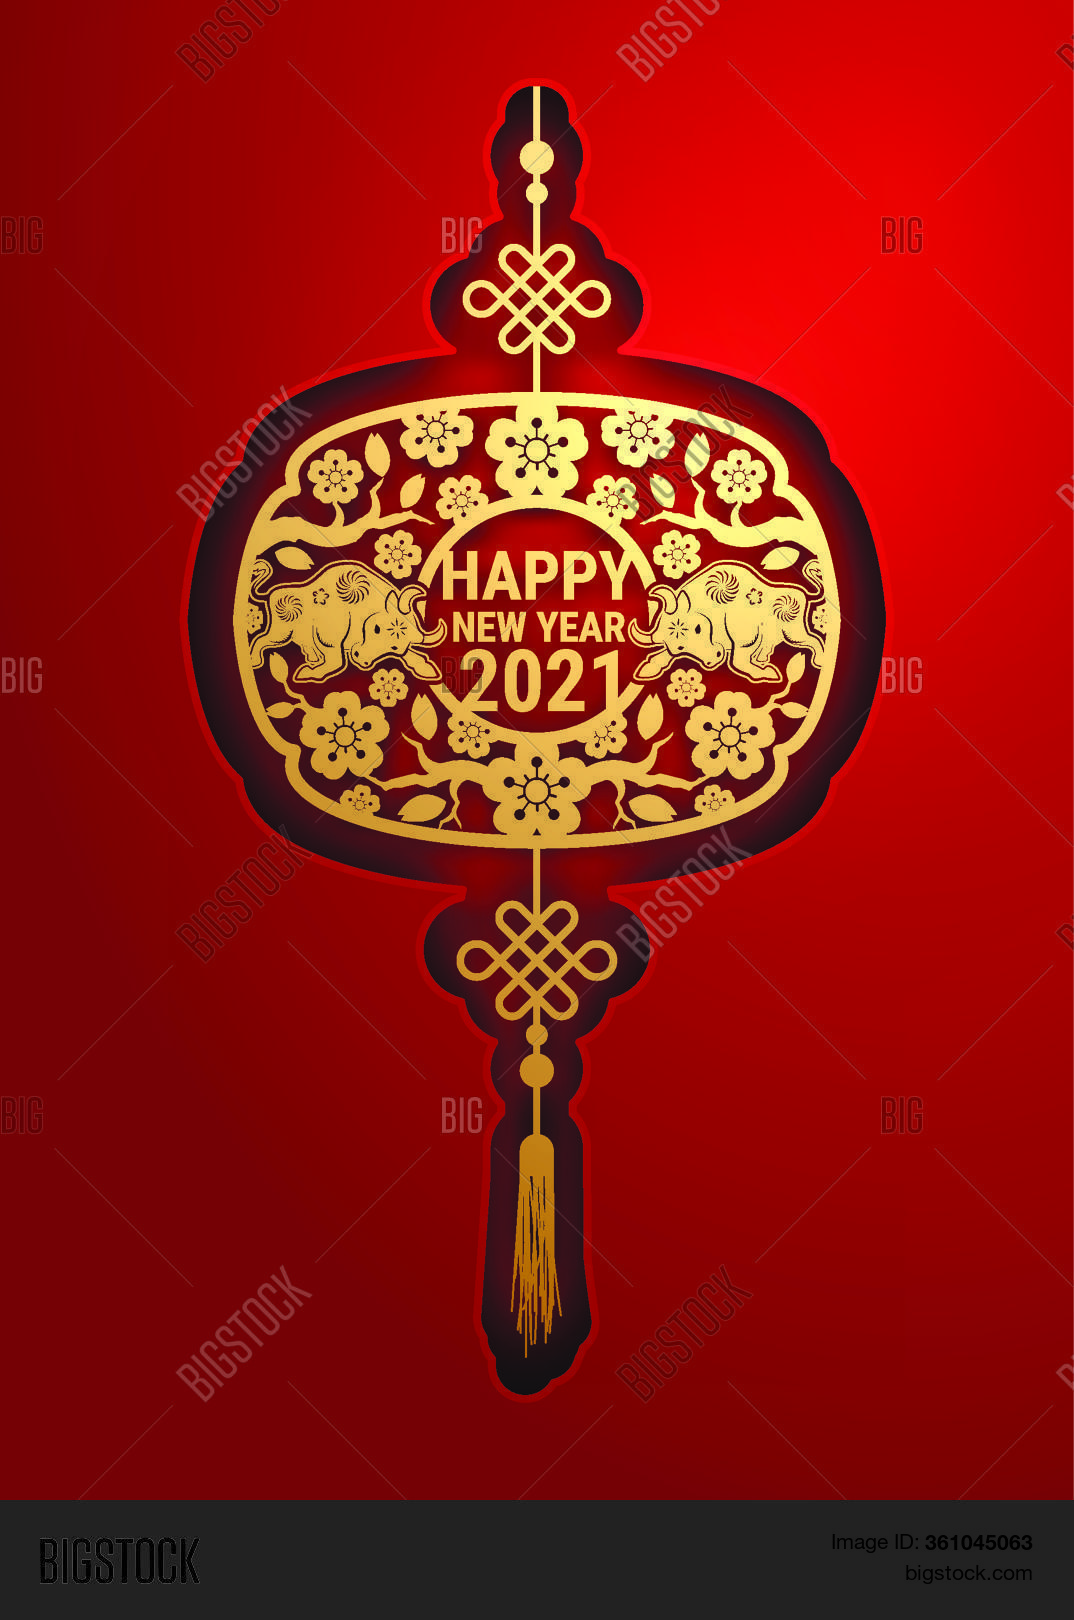 2021 chinese new year vector photo free trial bigstock bigstock